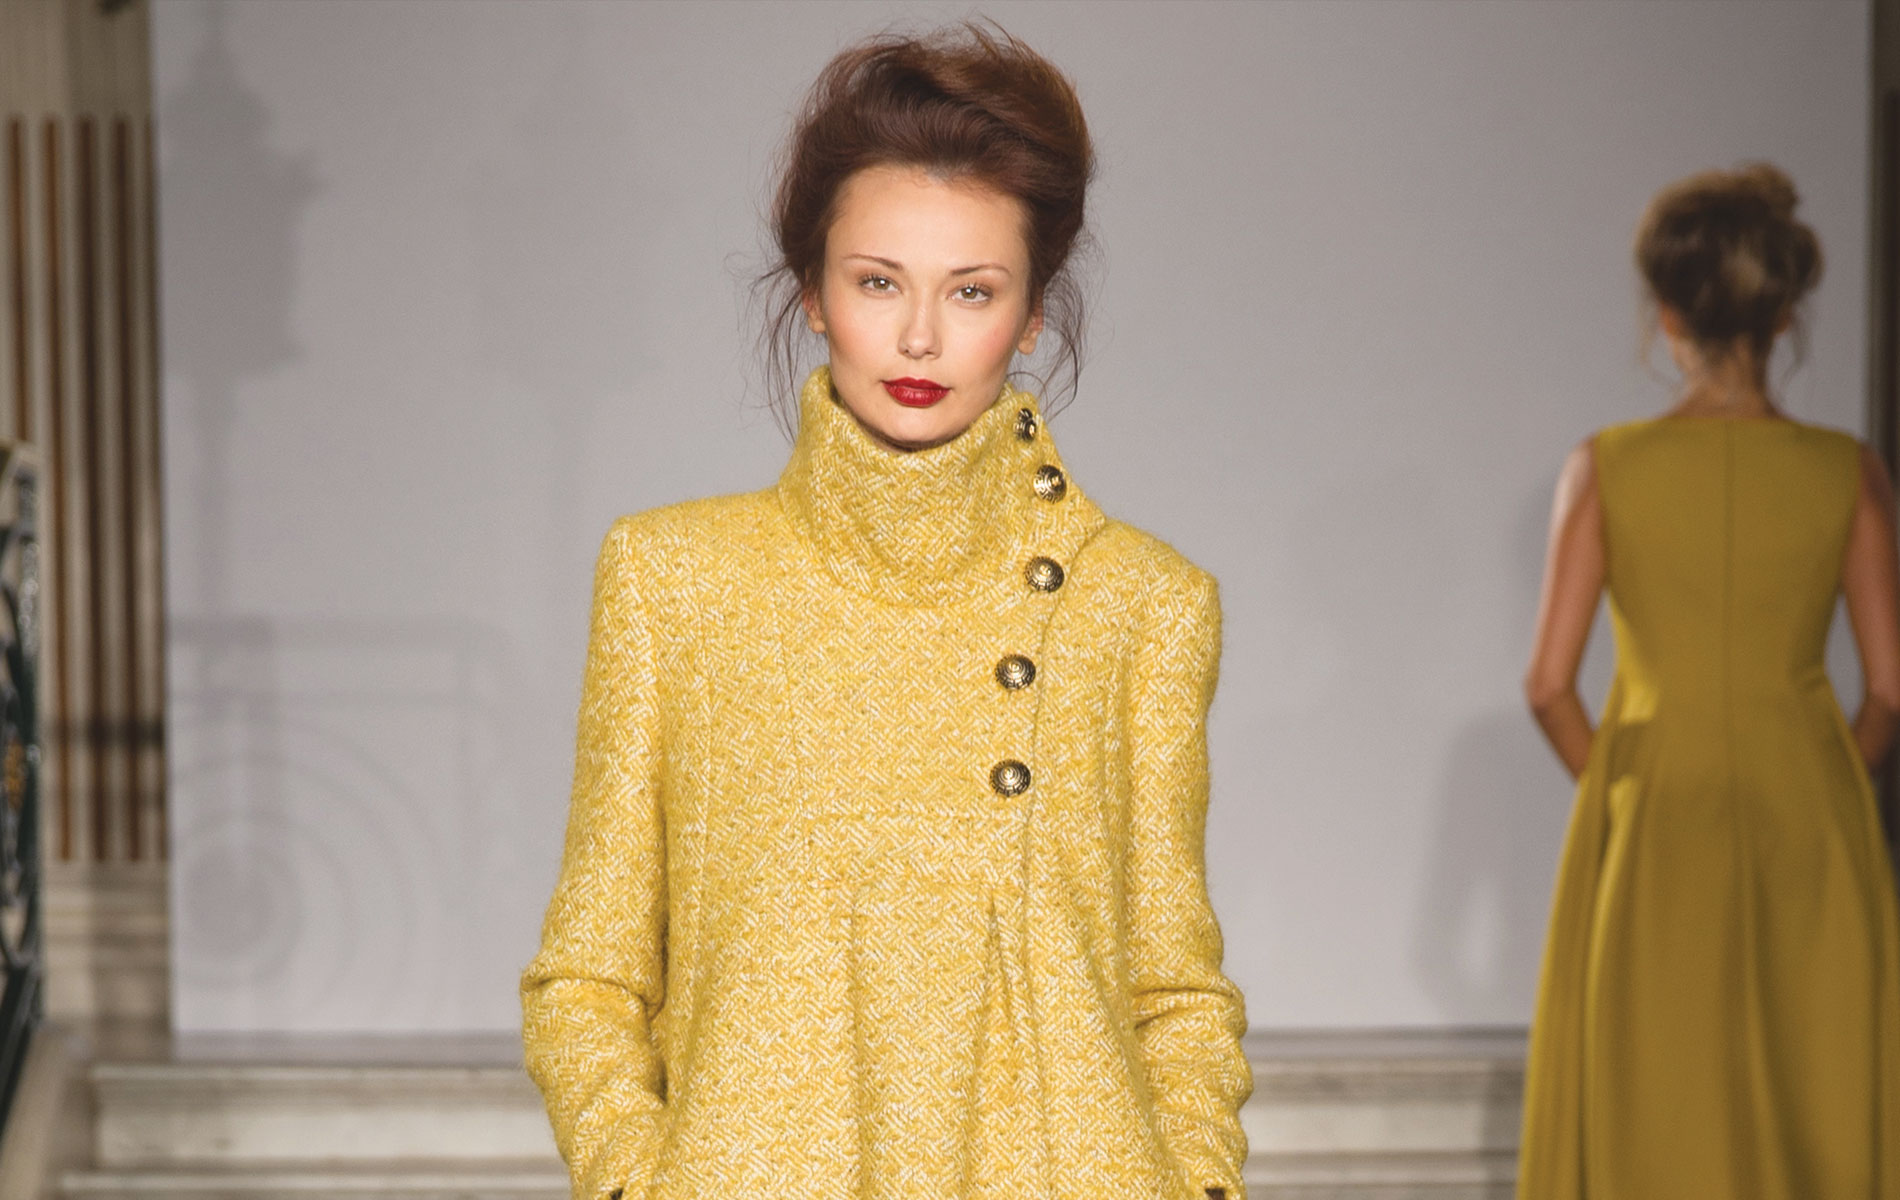 model on runway in a yellow dress designed by paul costelloe